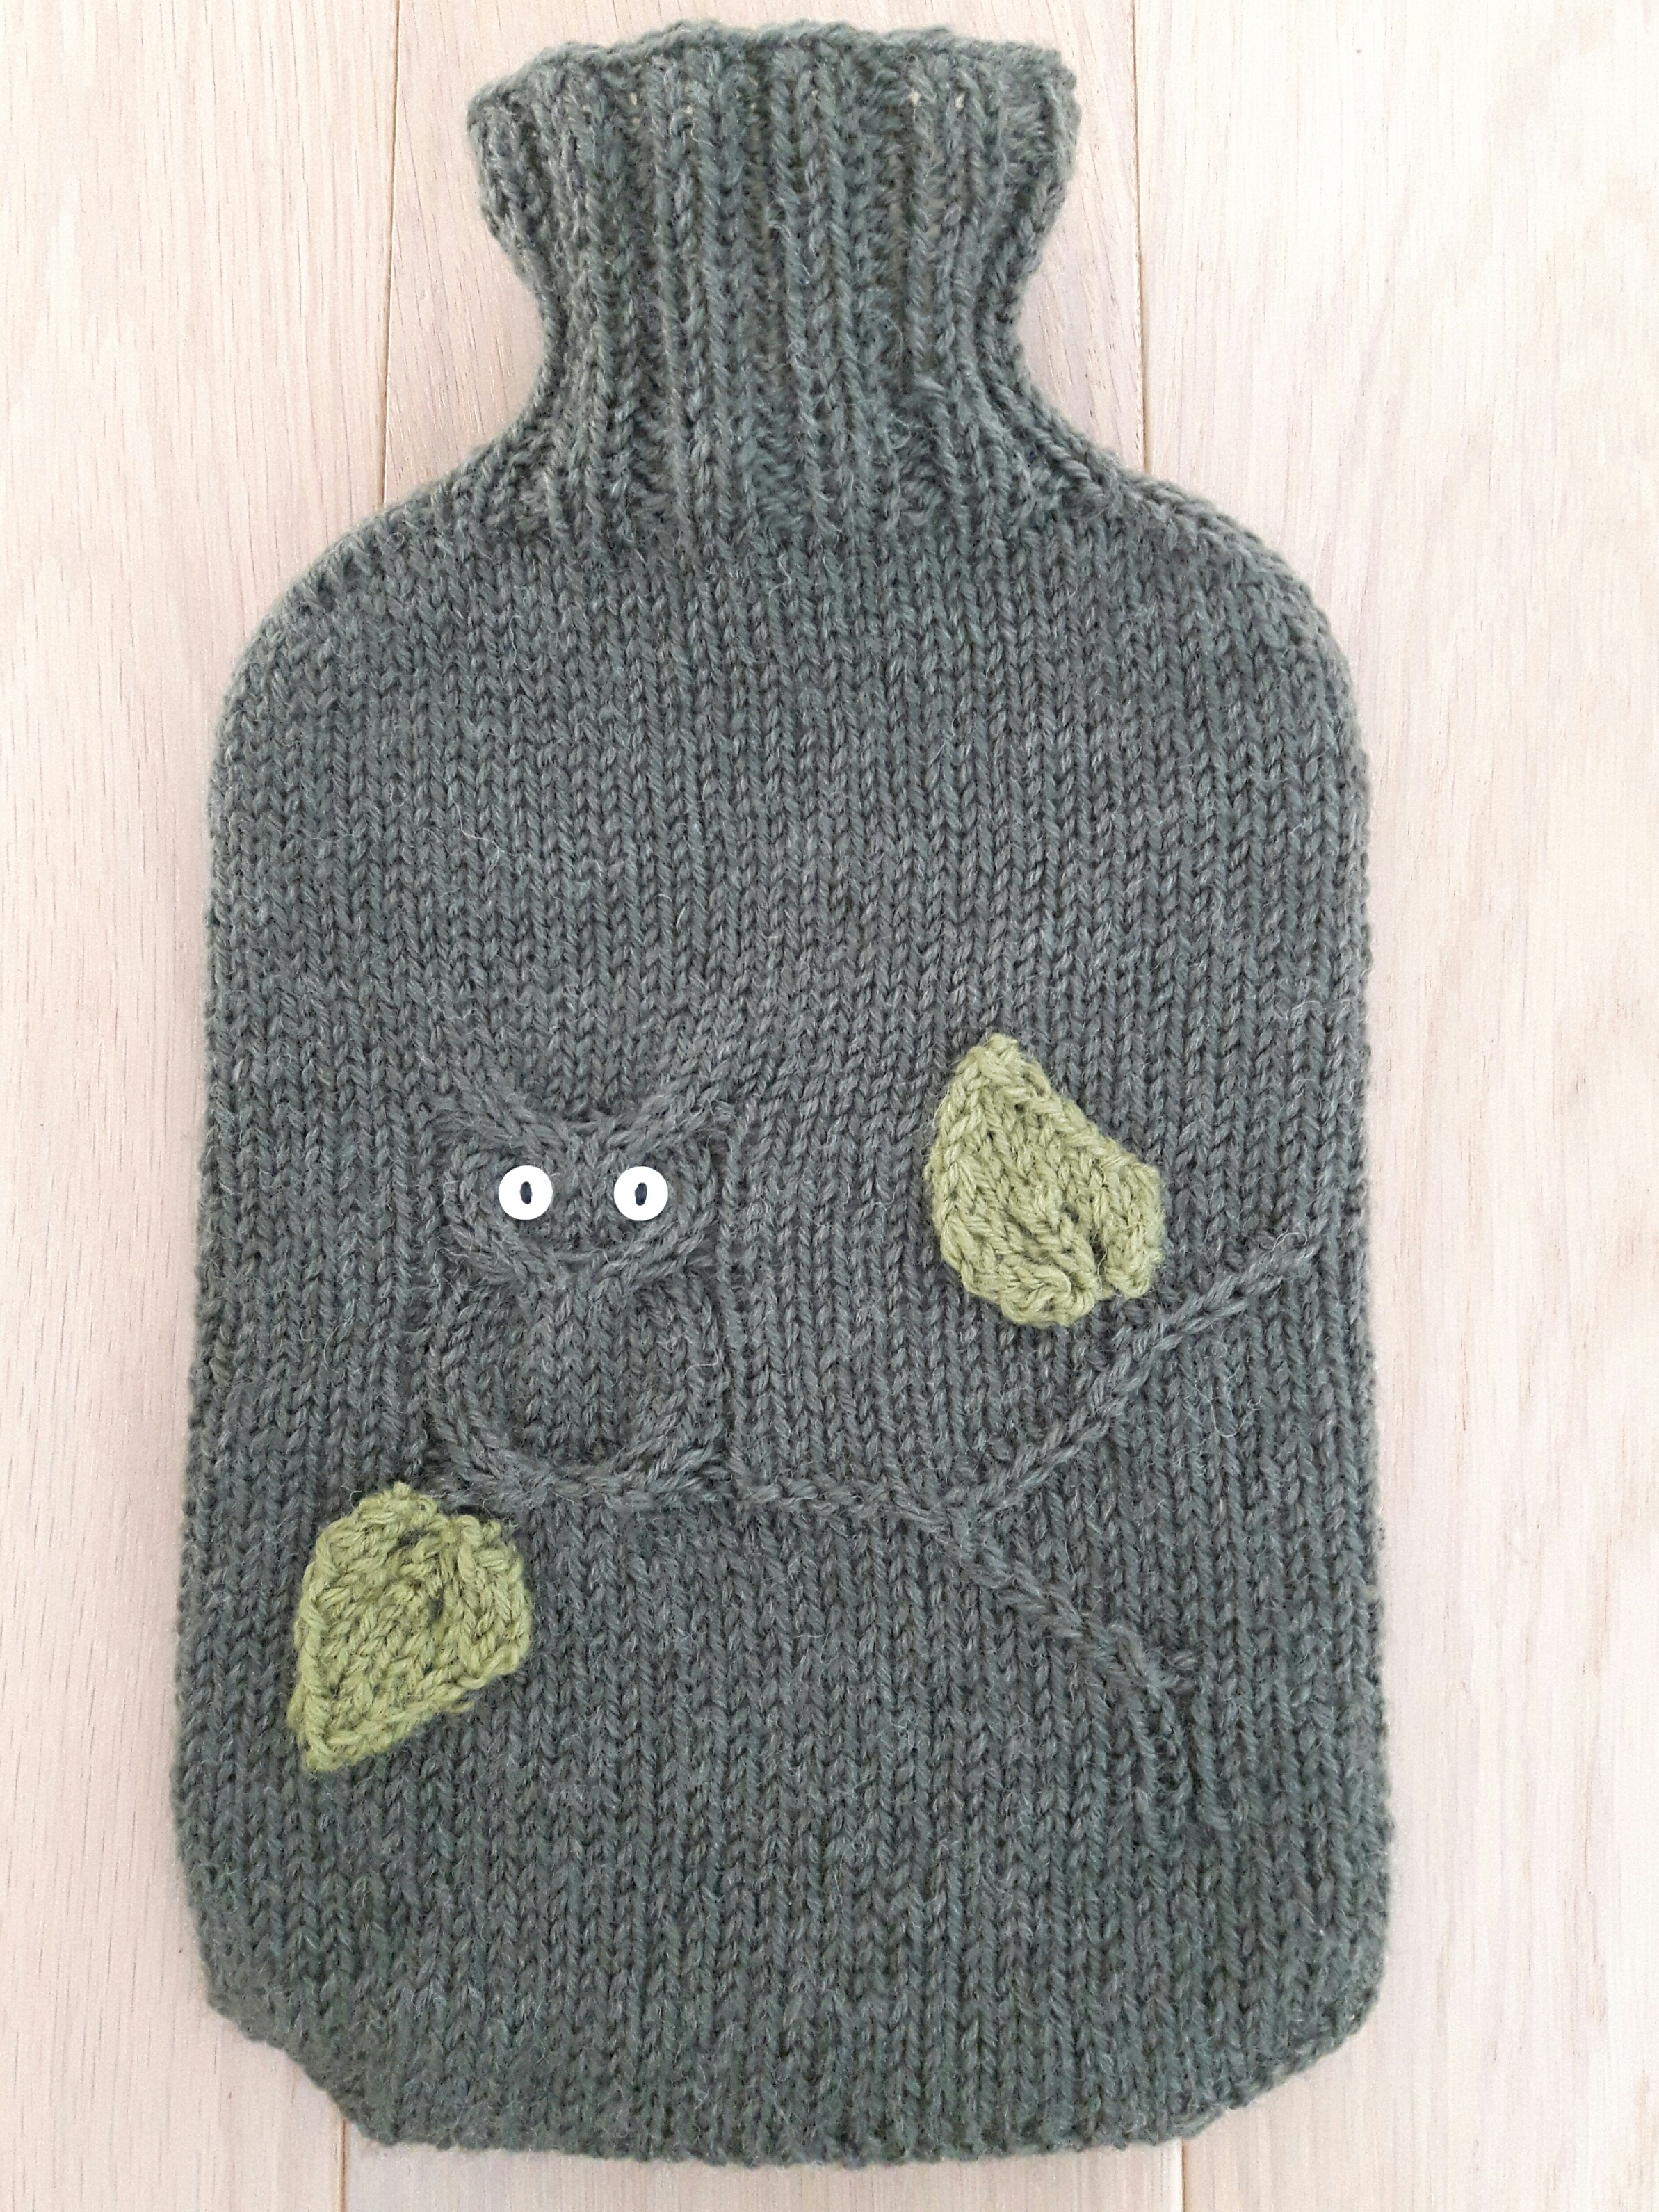 Owl Hot Water Bottle Cover Knitting Pattern : Night Owl Hot Water Bottle Cover knitting project by Katie H LoveCrochet